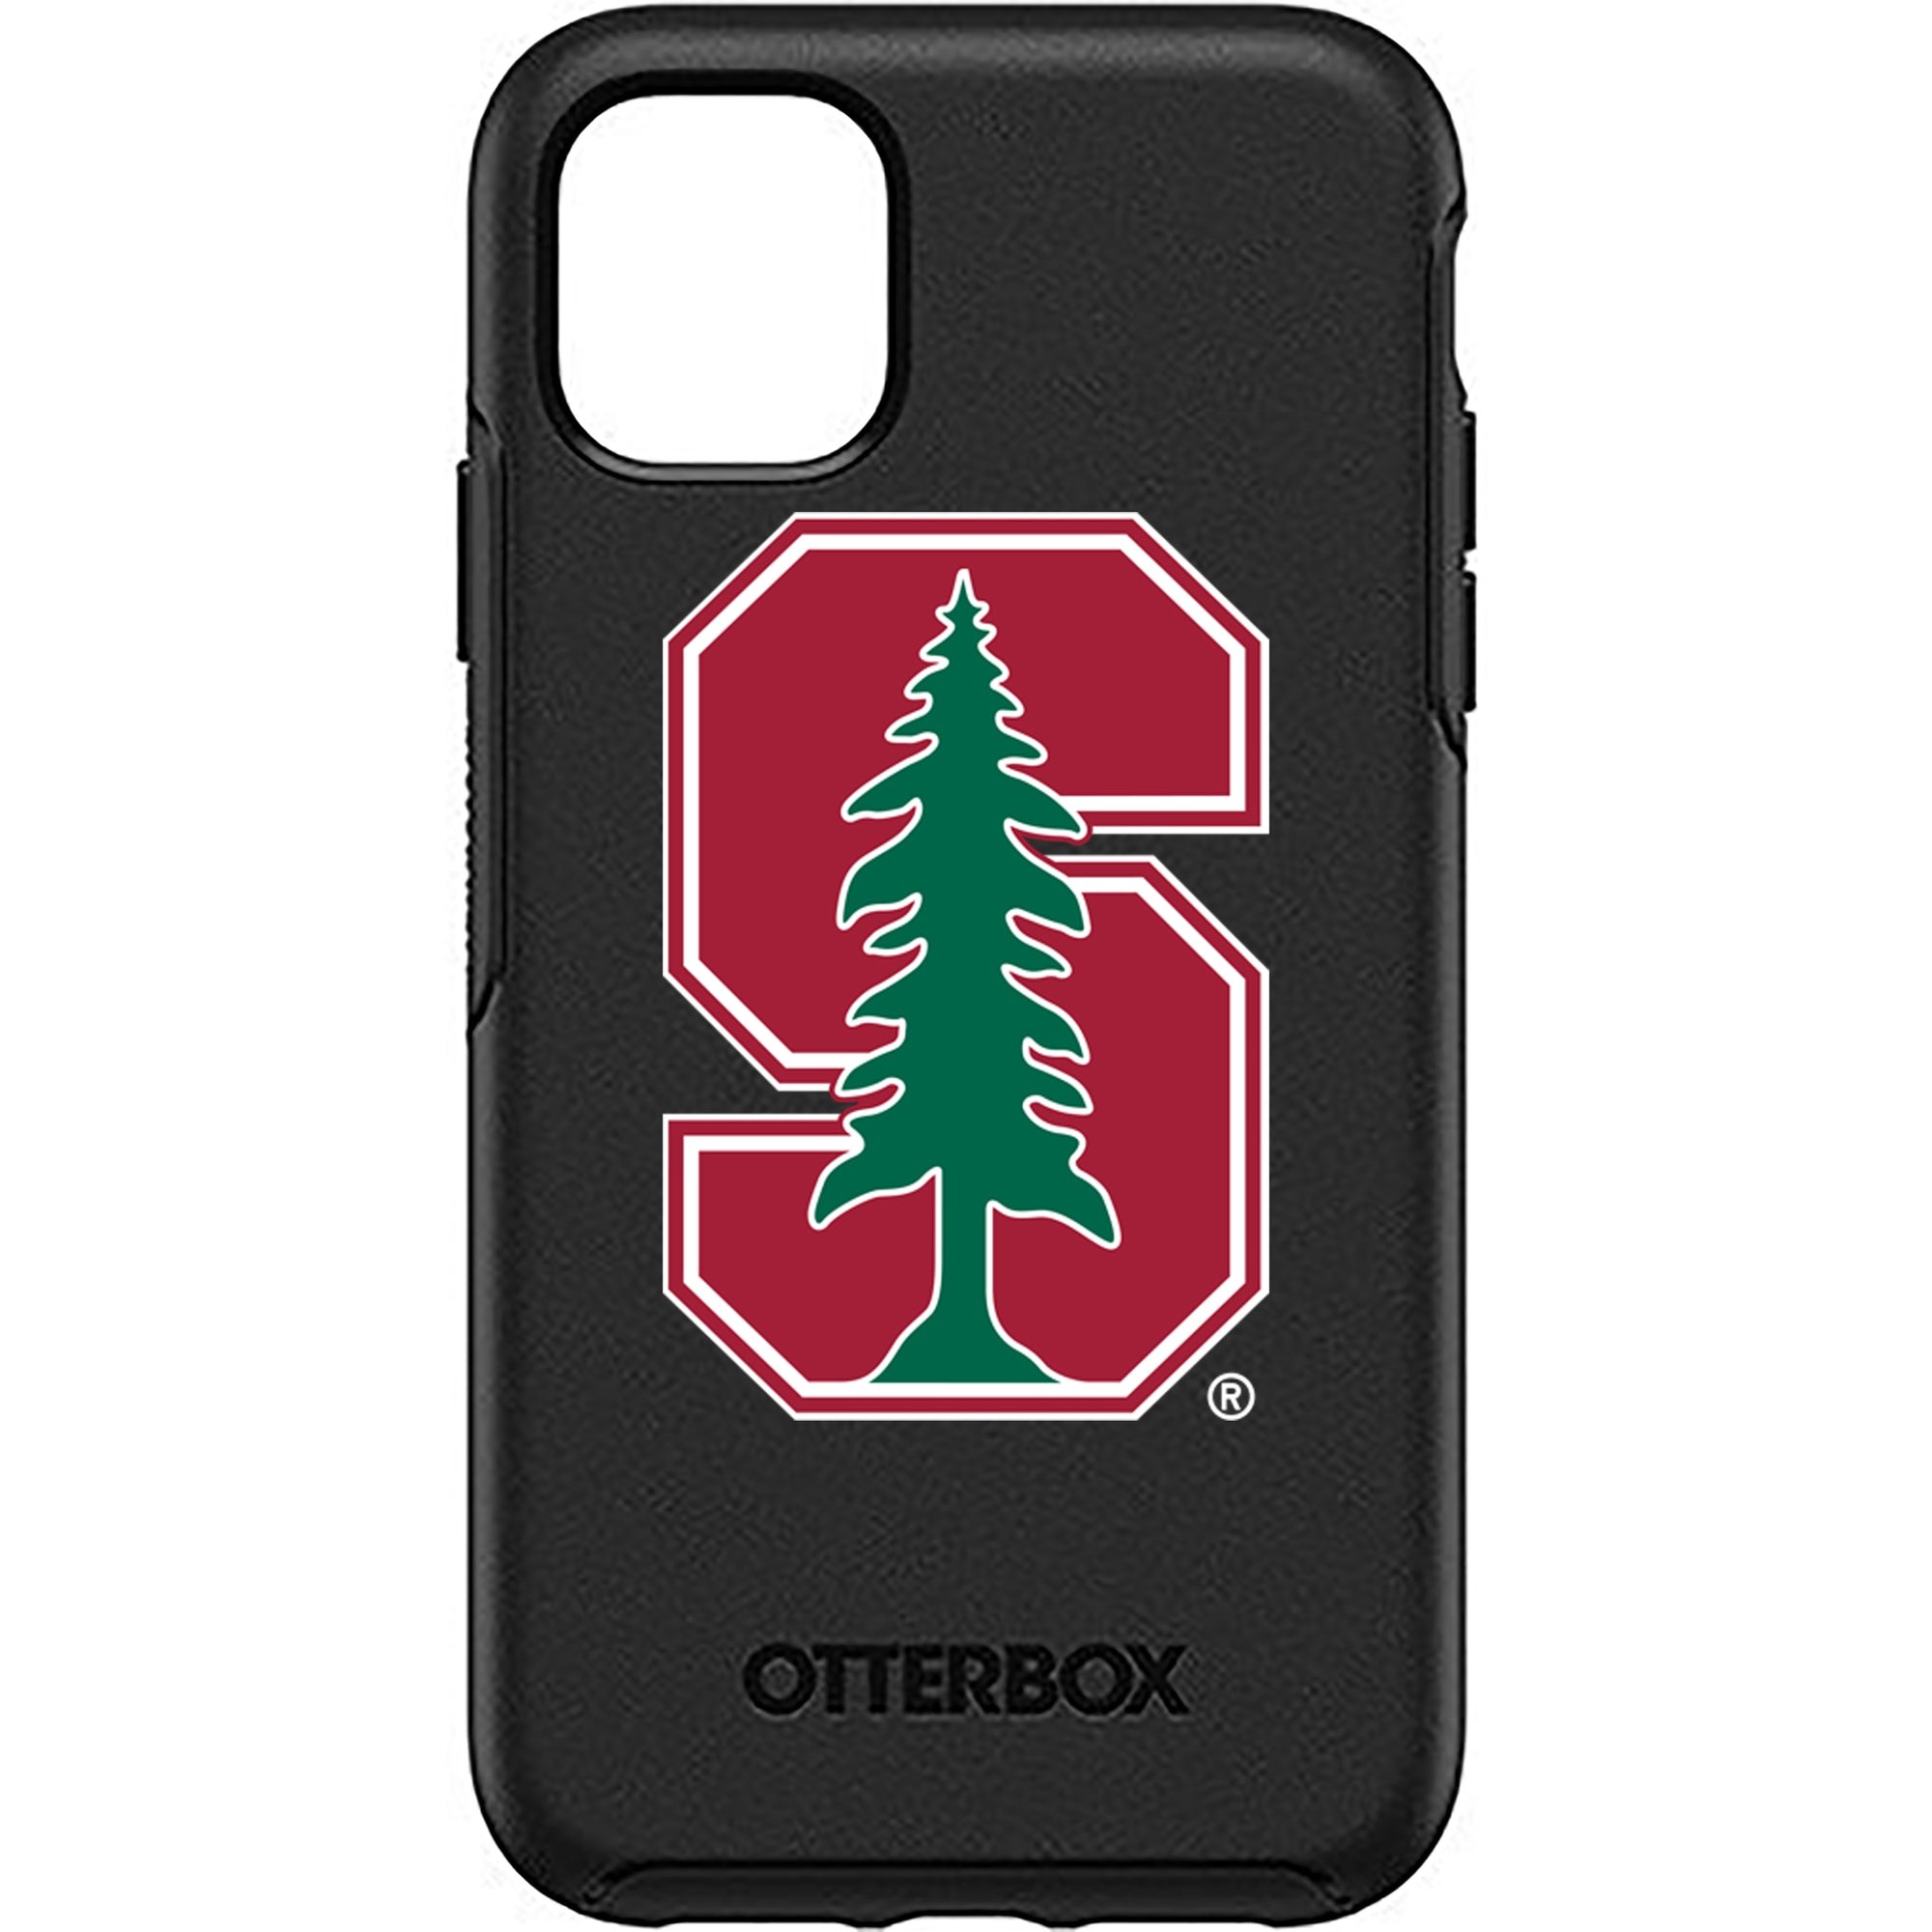 Stanford Cardinal Otterbox Symmetry Case (for iPhone 11, Pro, Pro Max)